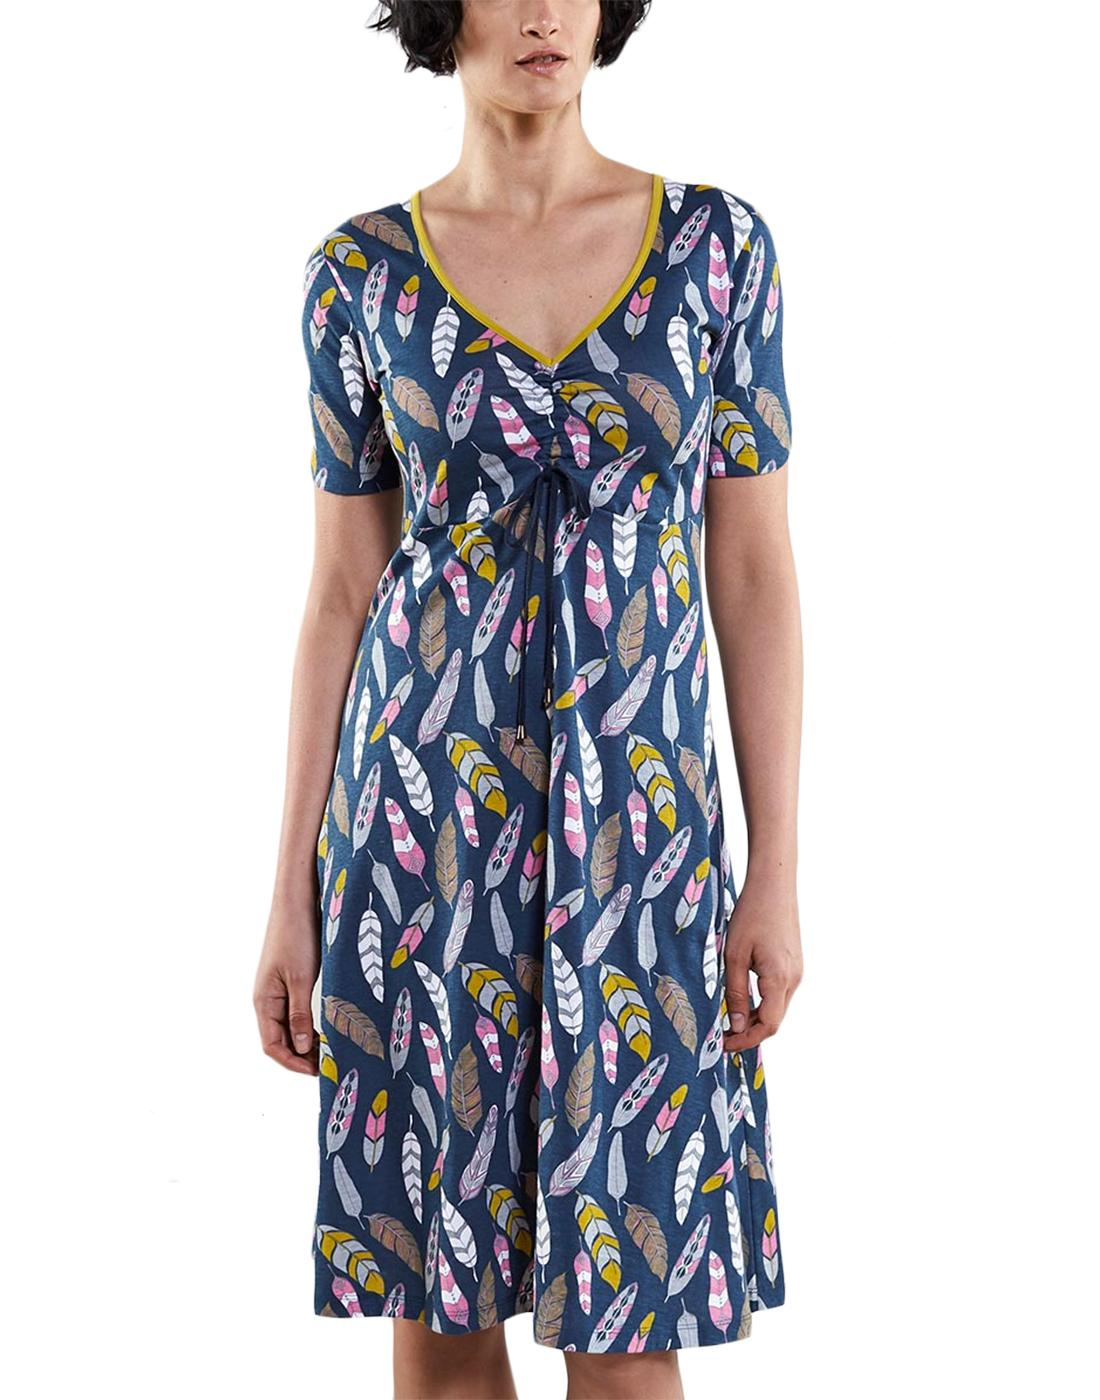 NOMADS Retro 70s Feather Print Ruche Summer Dress